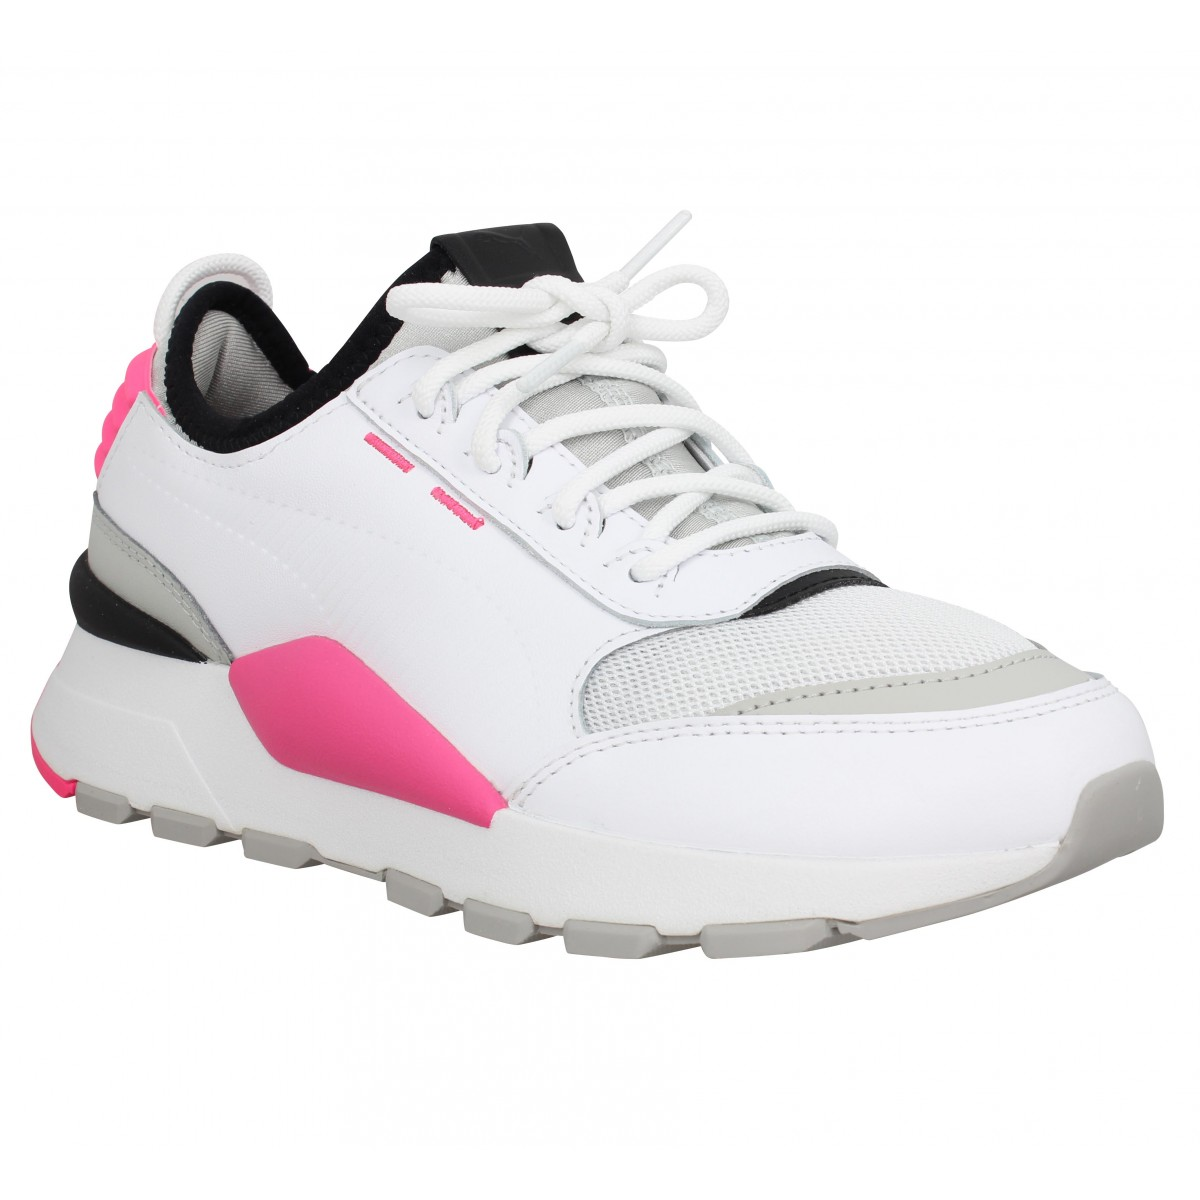 779c1b2a6b9 Baskets PUMA RS-0 Sound toile Femme Blanc